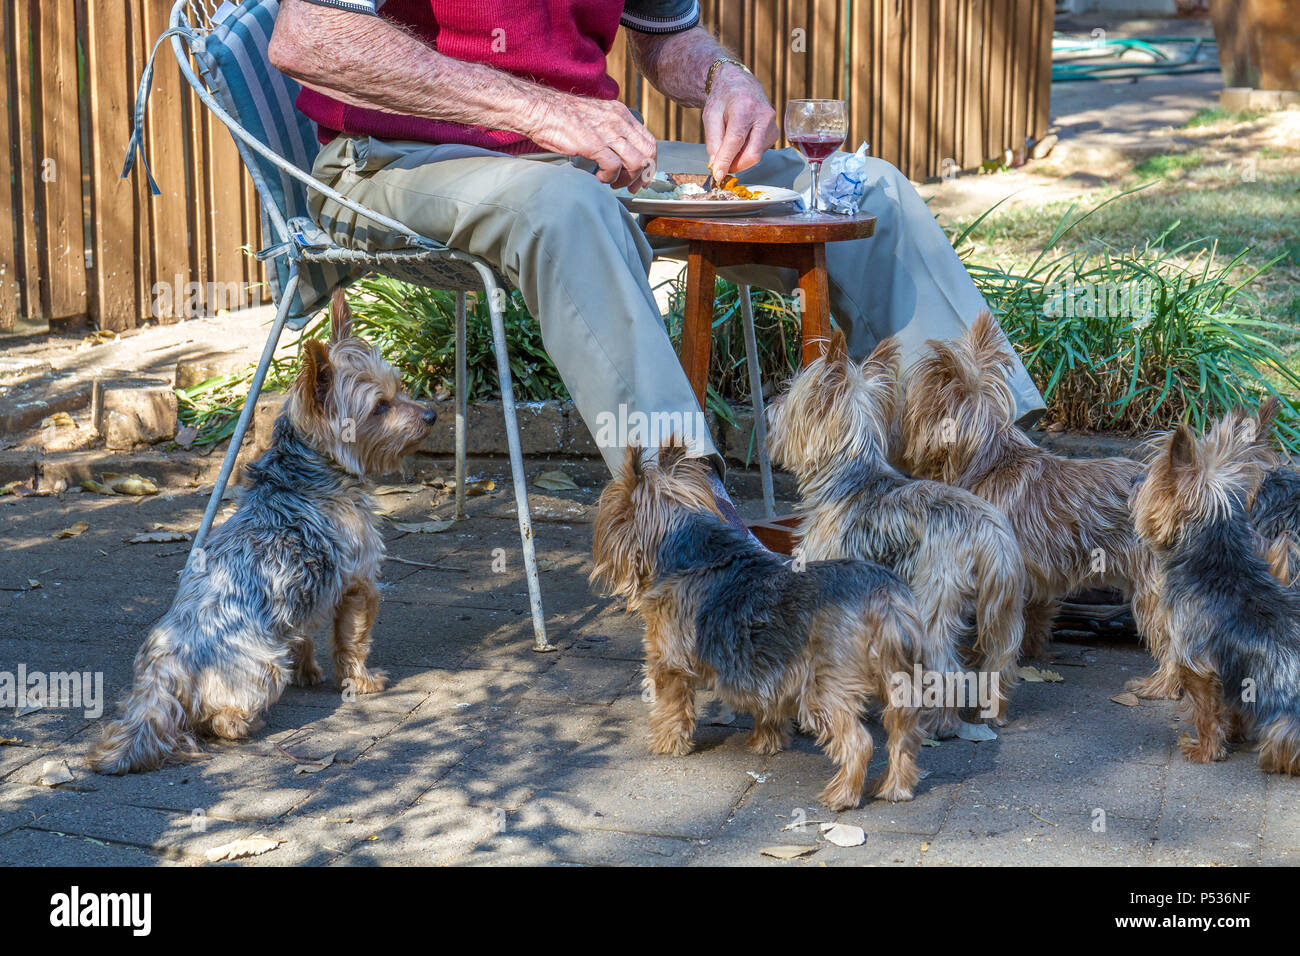 Small dogs waiting patiently for titbits of food to drop from the table image with copy space in landscape format - Stock Image